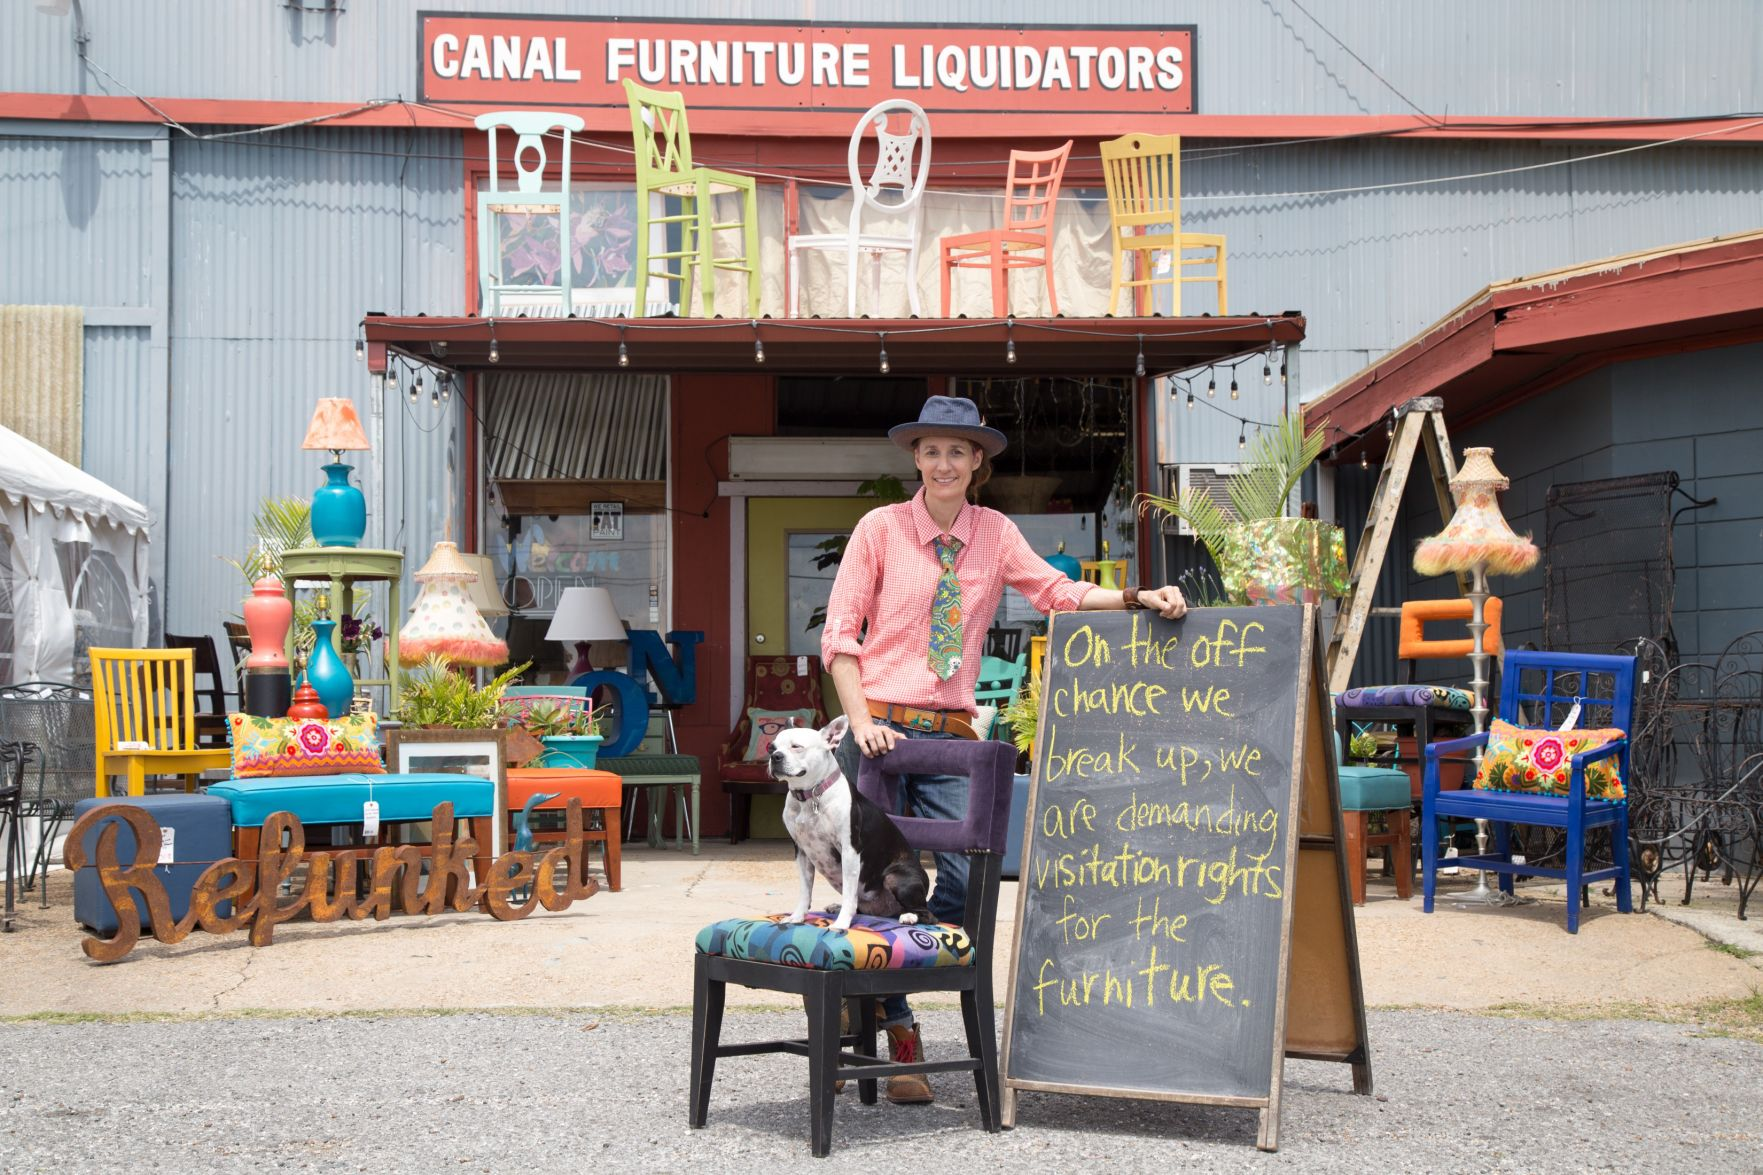 Bon Whatu0027s Next For Canal Furniture Liquidators After The April 23 Fire_lowres